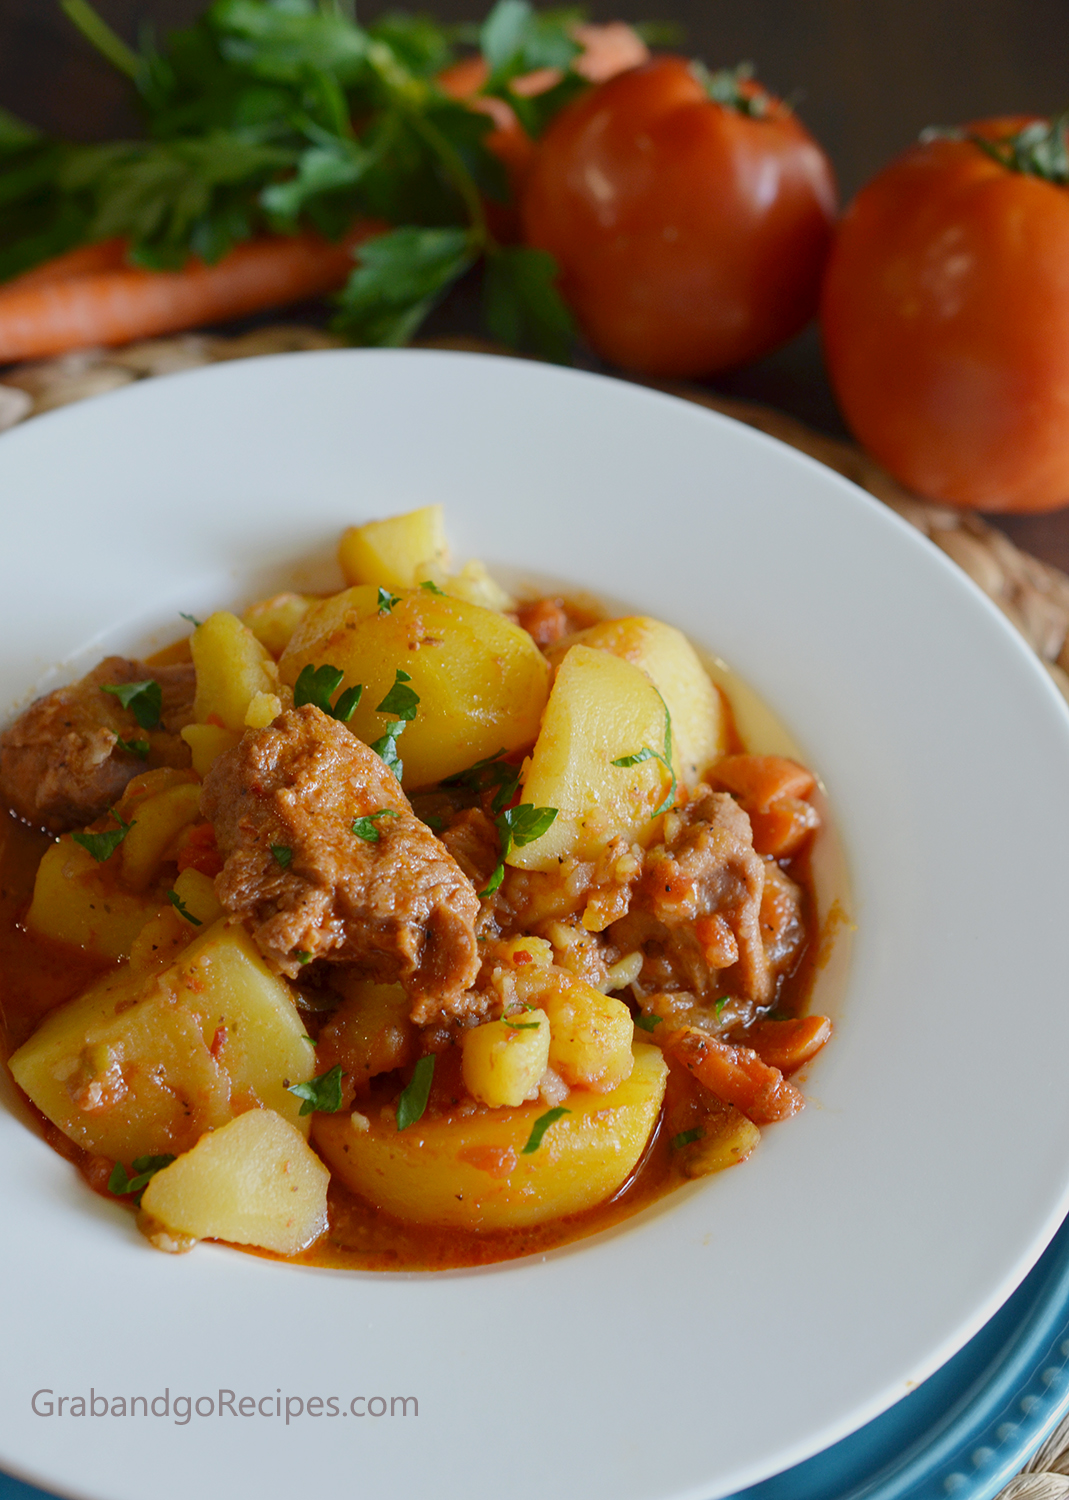 Mom's Braised Potatoes Recipe